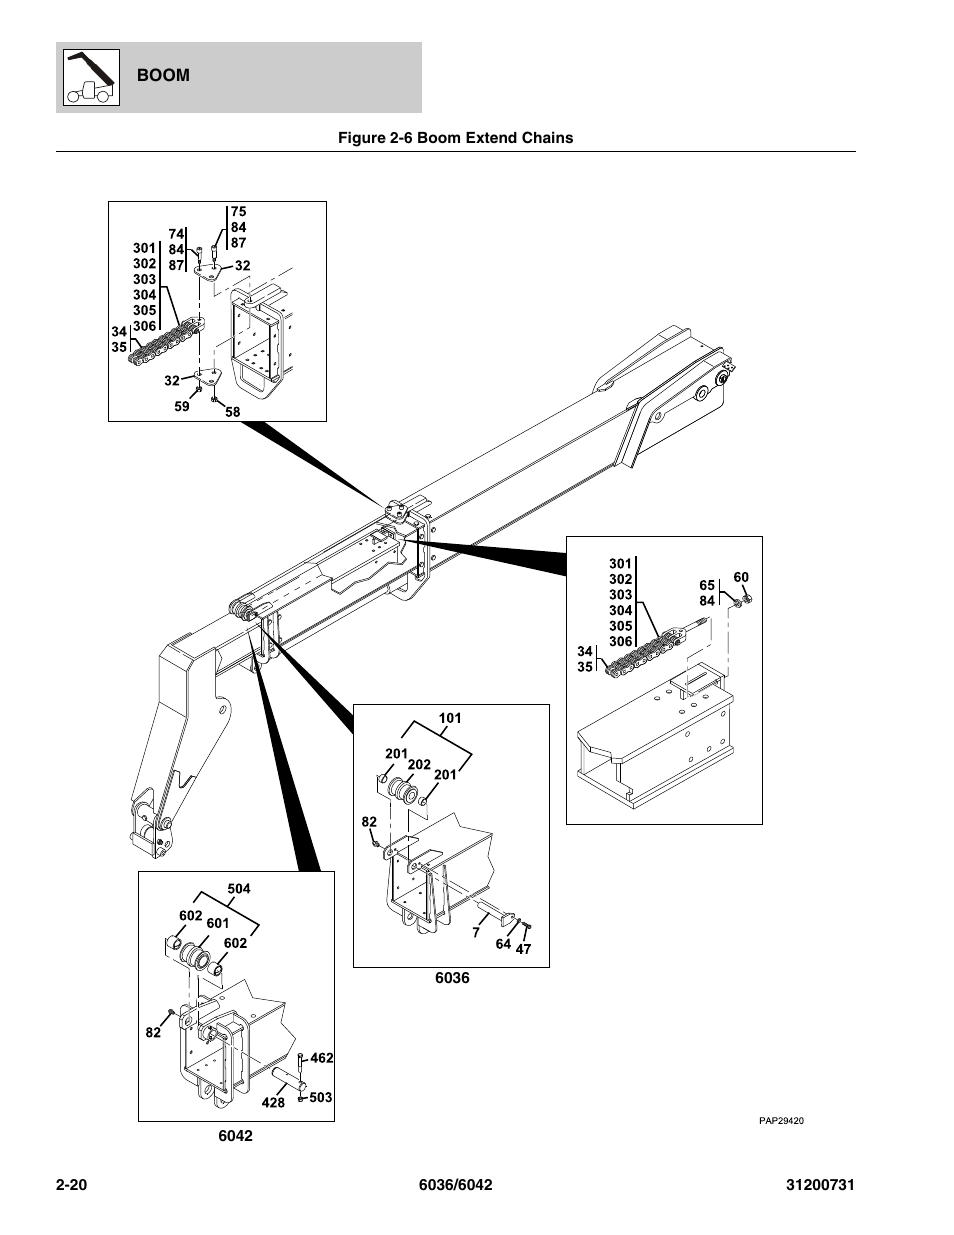 hight resolution of figure 2 6 boom extend chains boom extend chains 20 chain assy see figure 2 6 for details skytrak 6036 parts manual user manual page 40 364